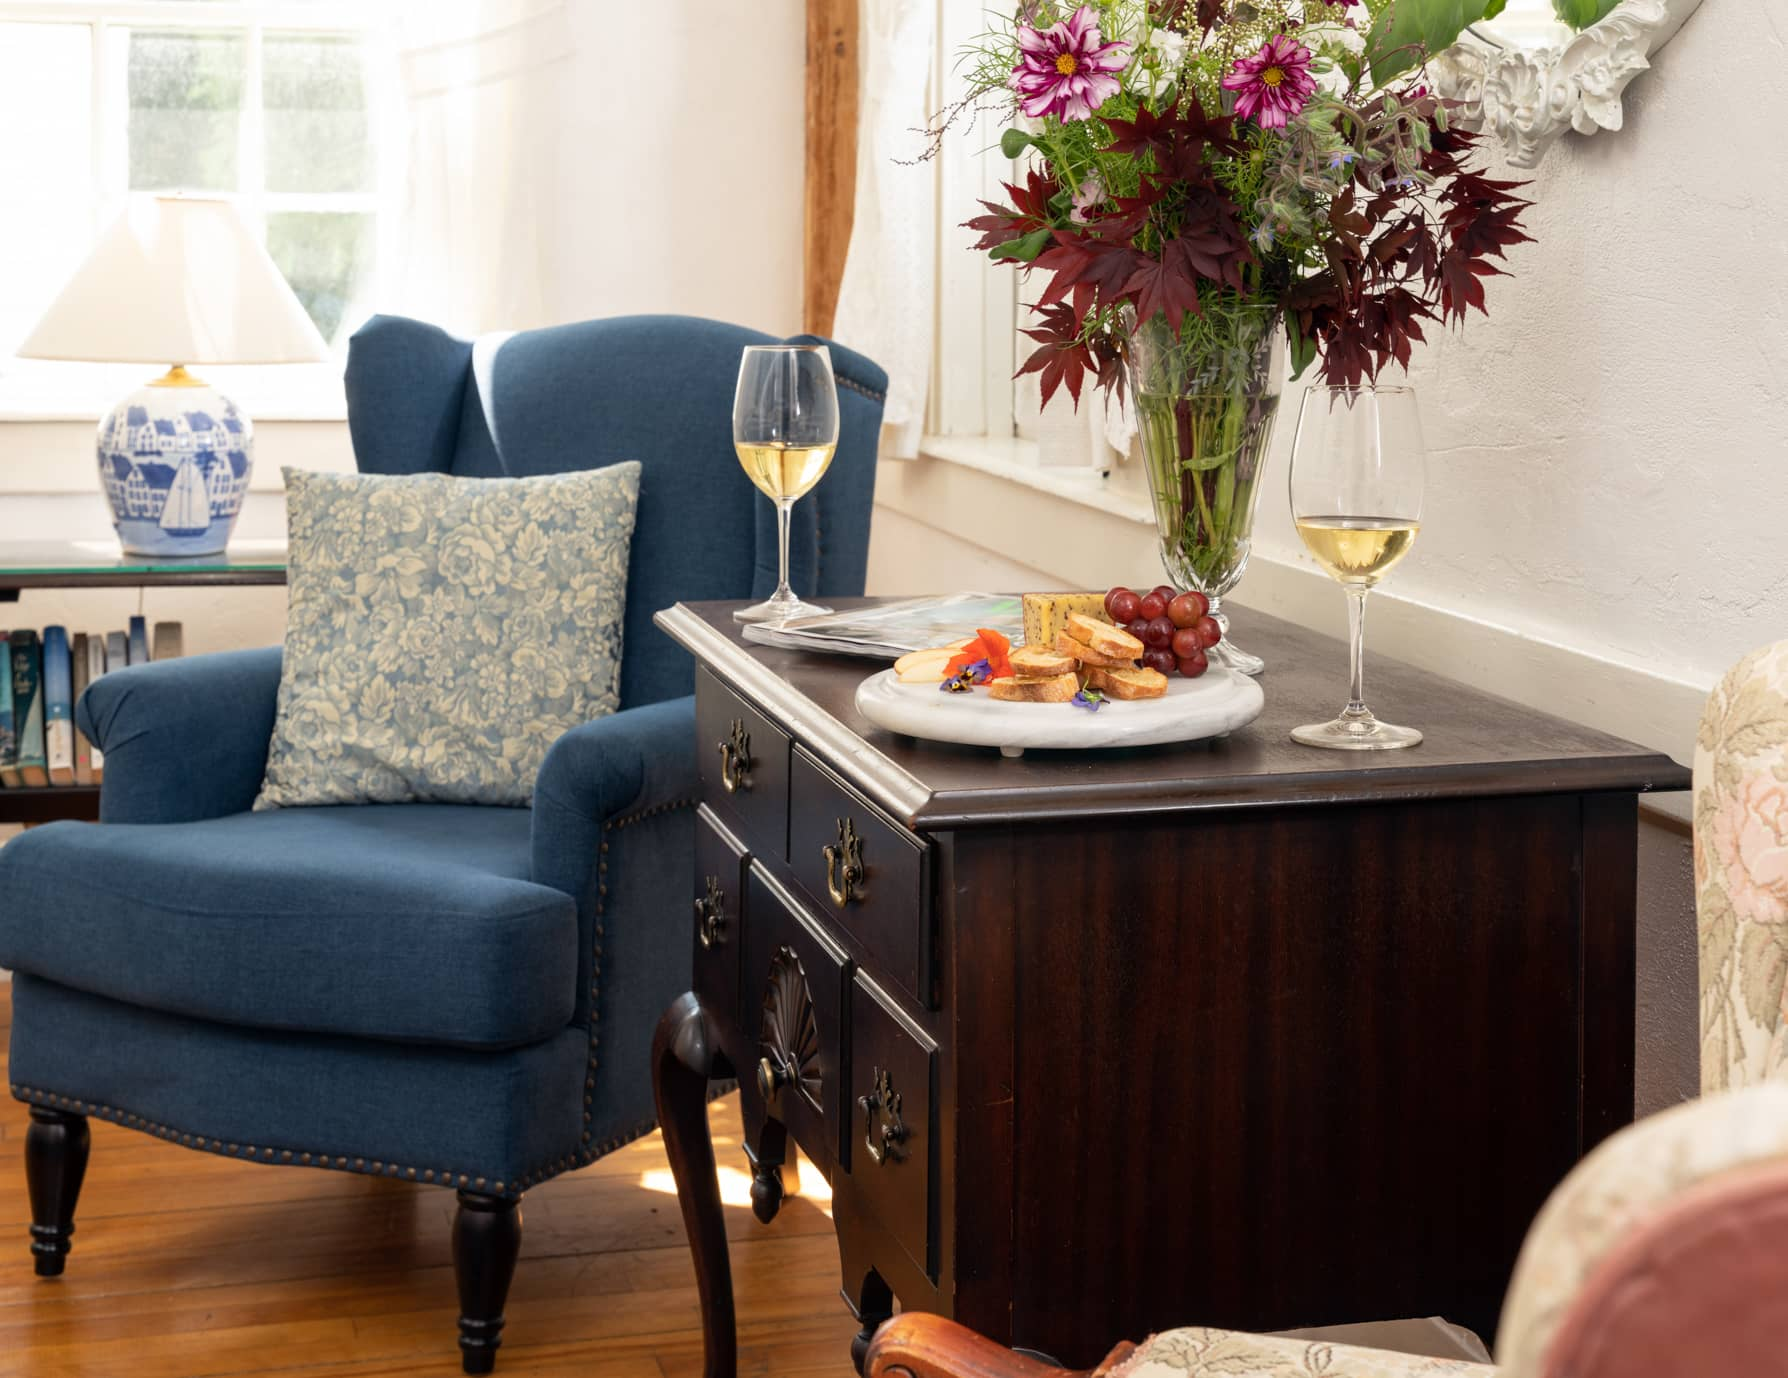 Room 1 seating area with a desk with wine and a cheese plate